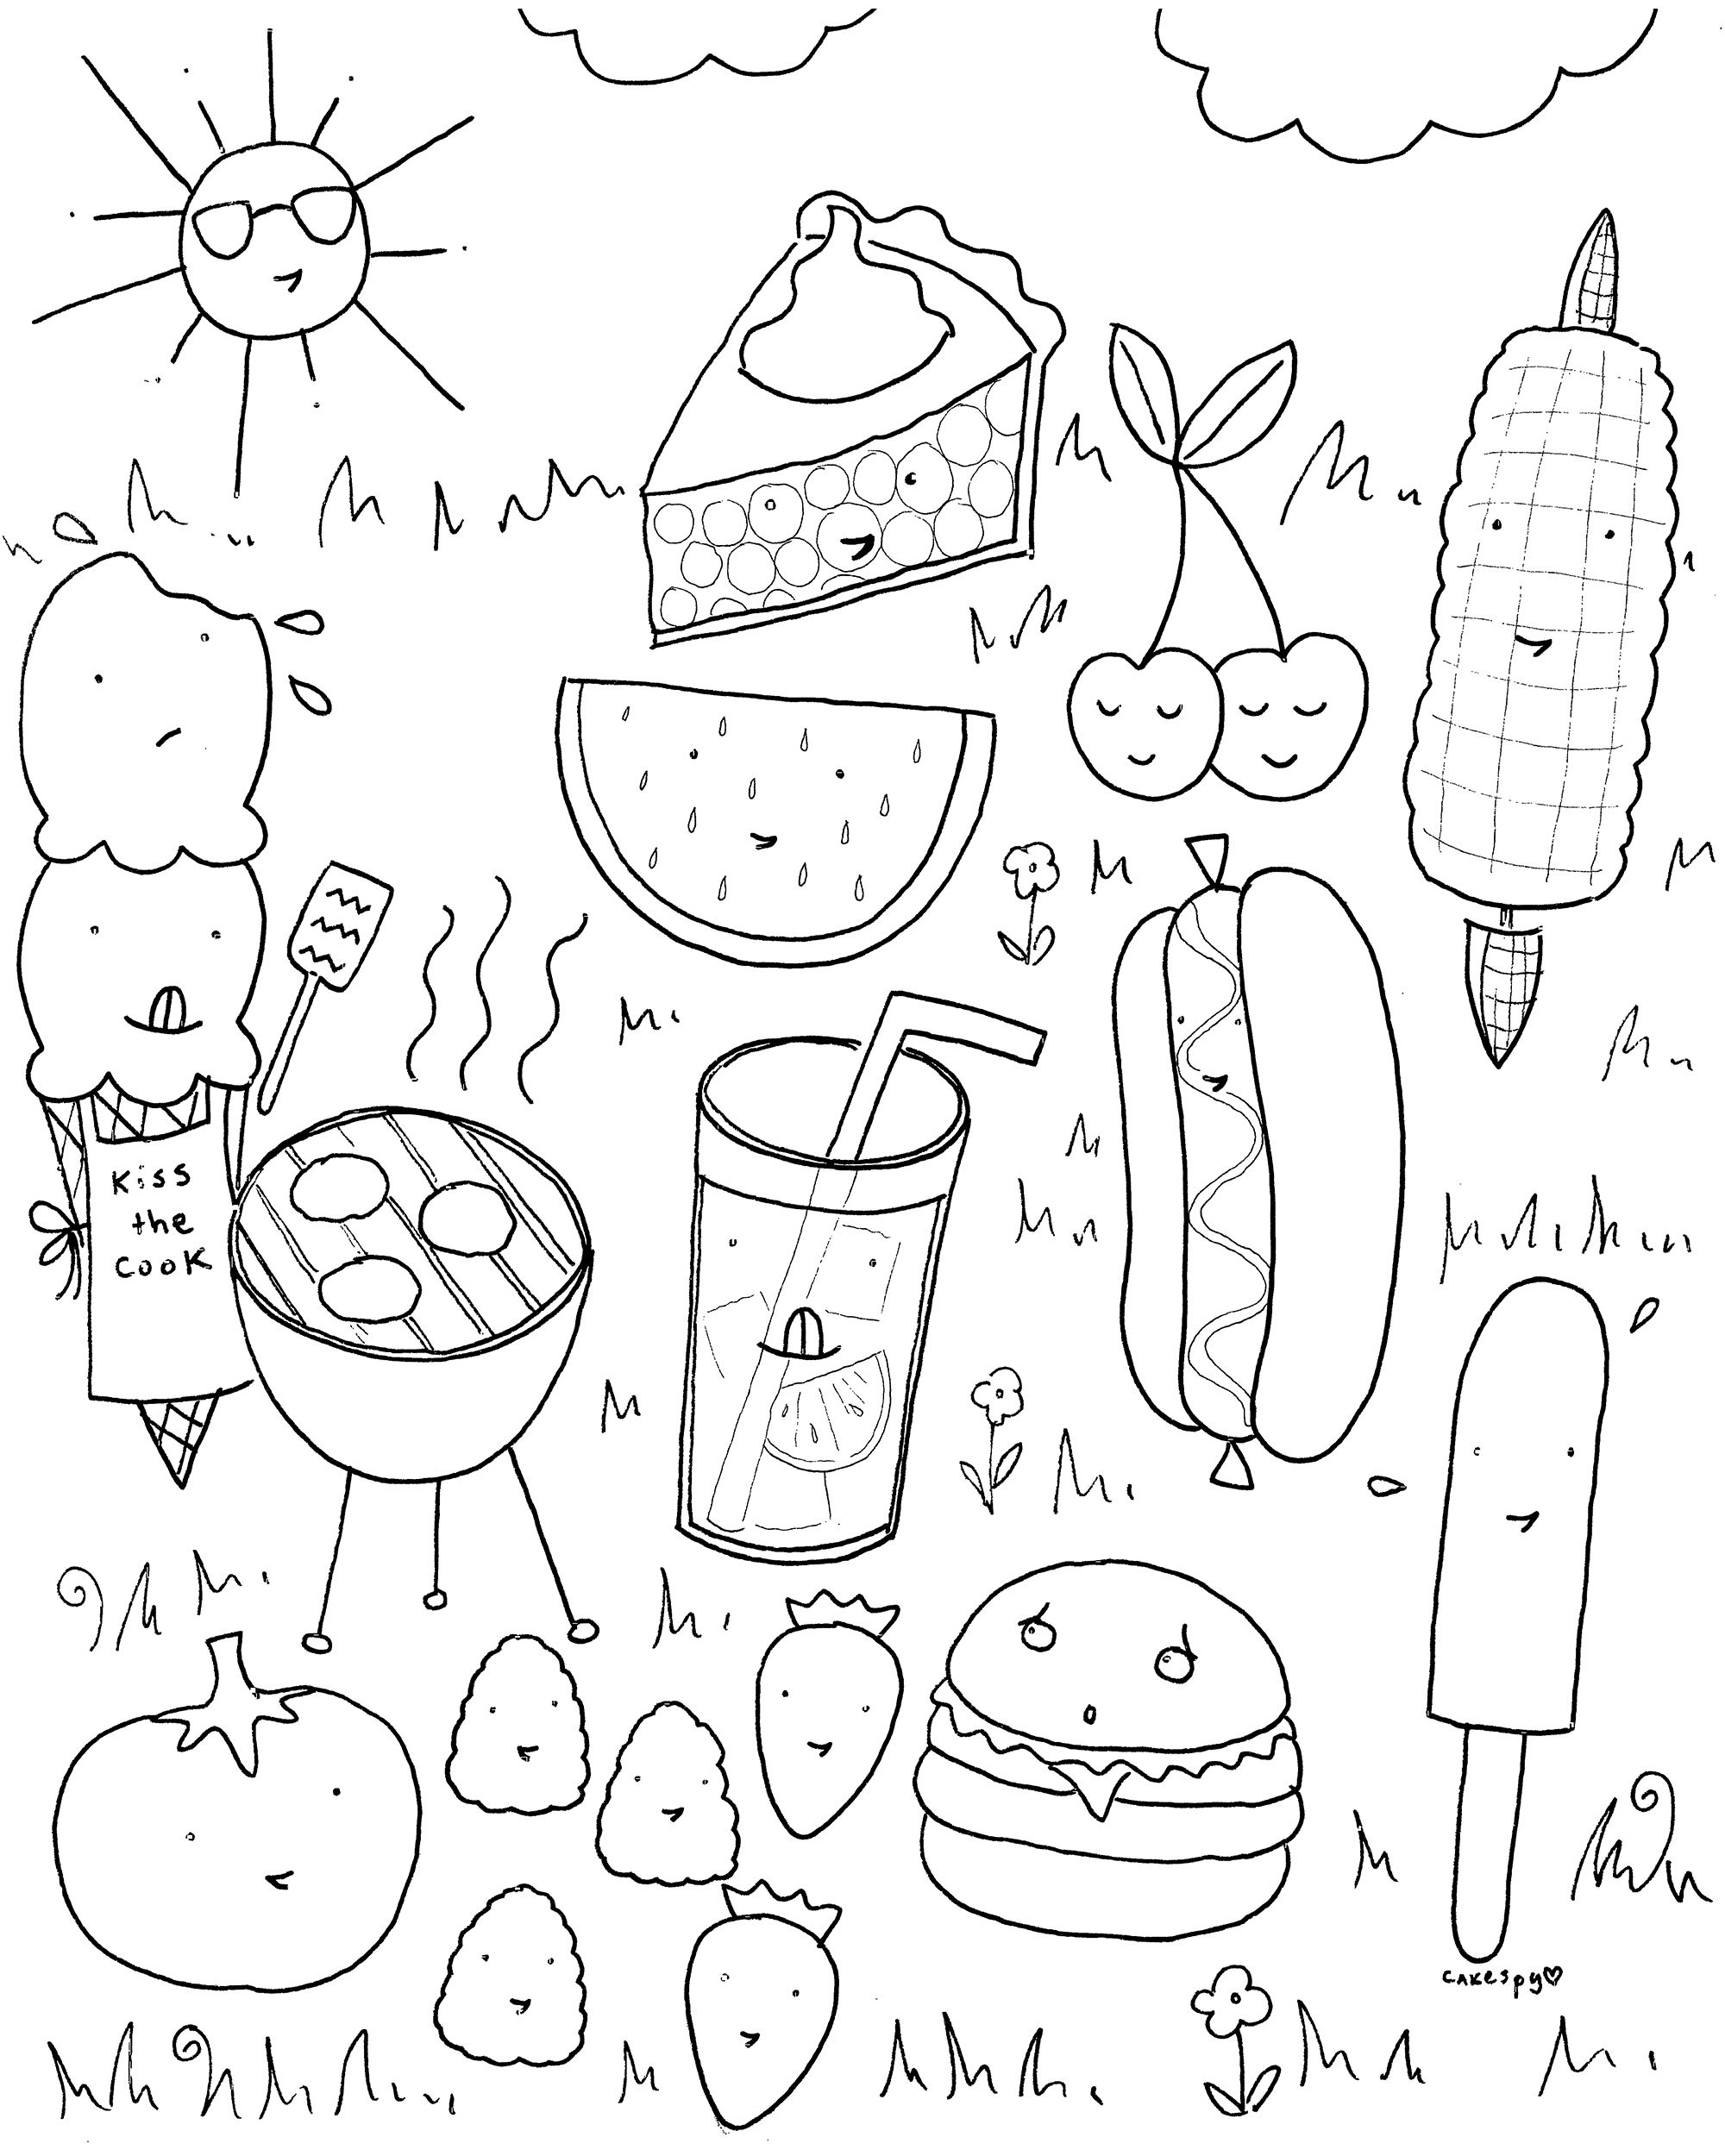 Free printable coloring pages veterinarians - Free Downloadable Summer Fun Coloring Book Pages